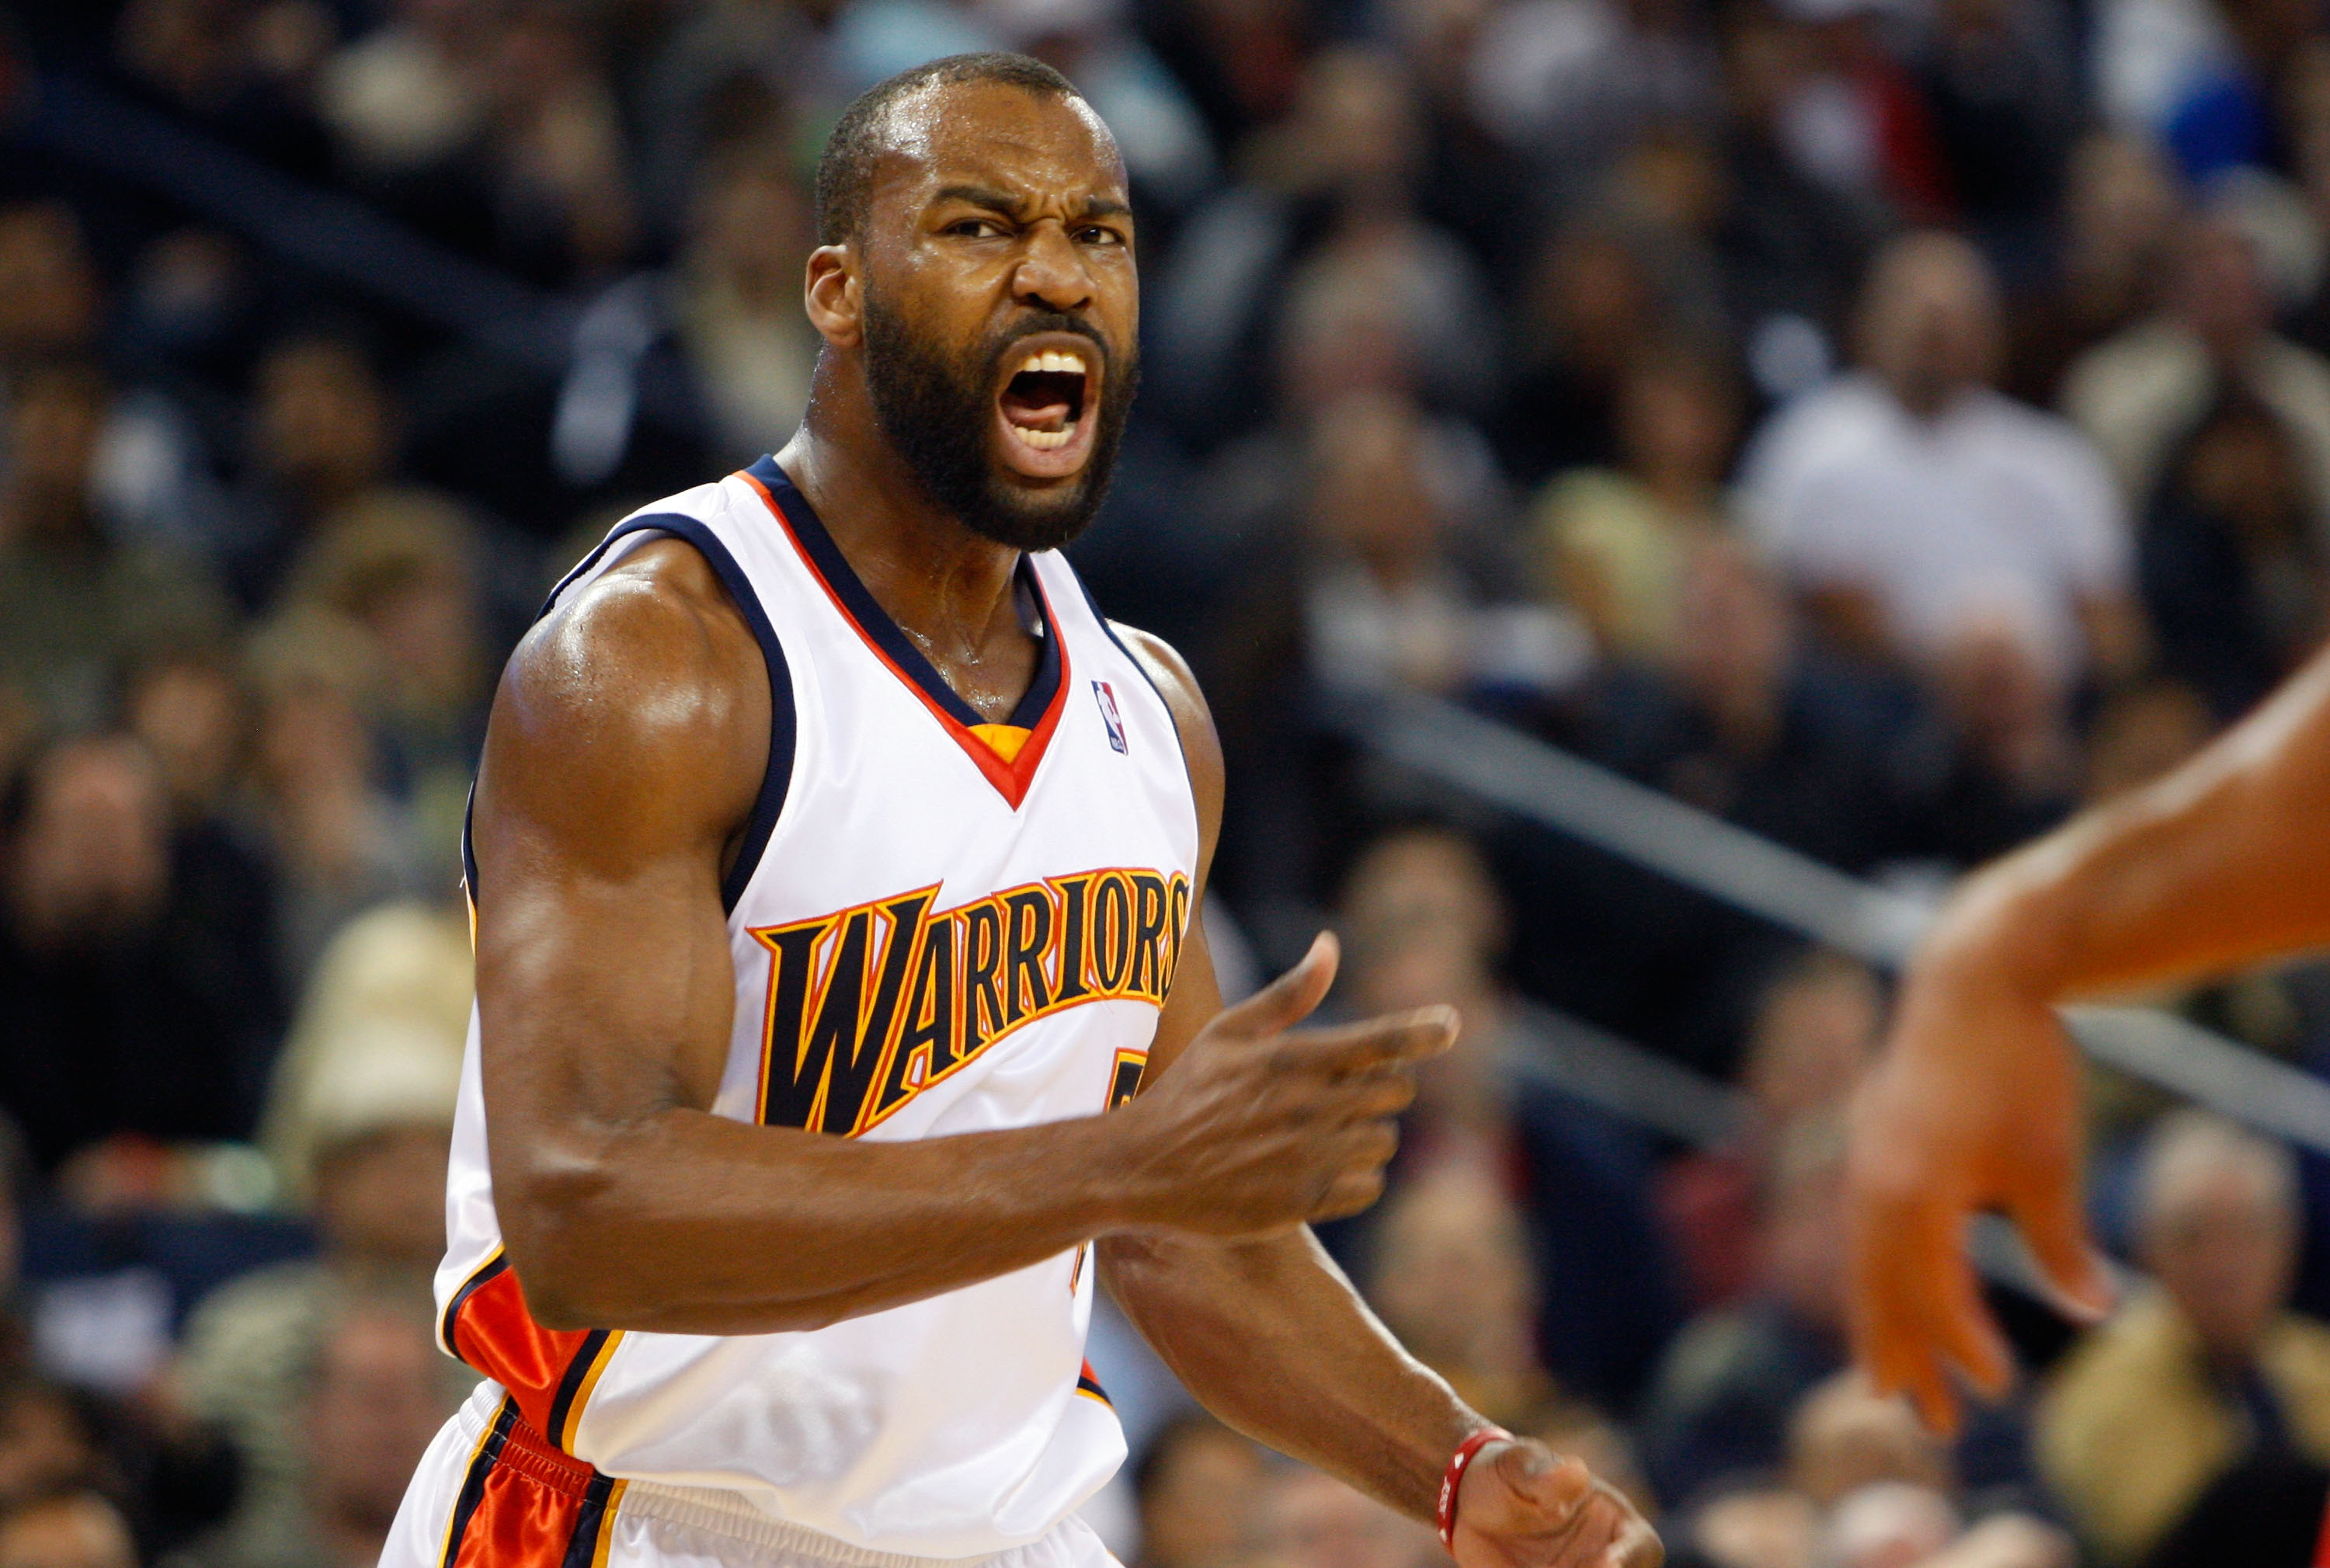 OAKLAND, CA - NOVEMBER 29:  Baron Davis #5 of the Golden State Warriors reacts to a call during the first half against the Houston Rockets November 29, 2007 at the Oracle Arena in Oakland, California.  (Photo by Justin Sullivan/Getty Images)